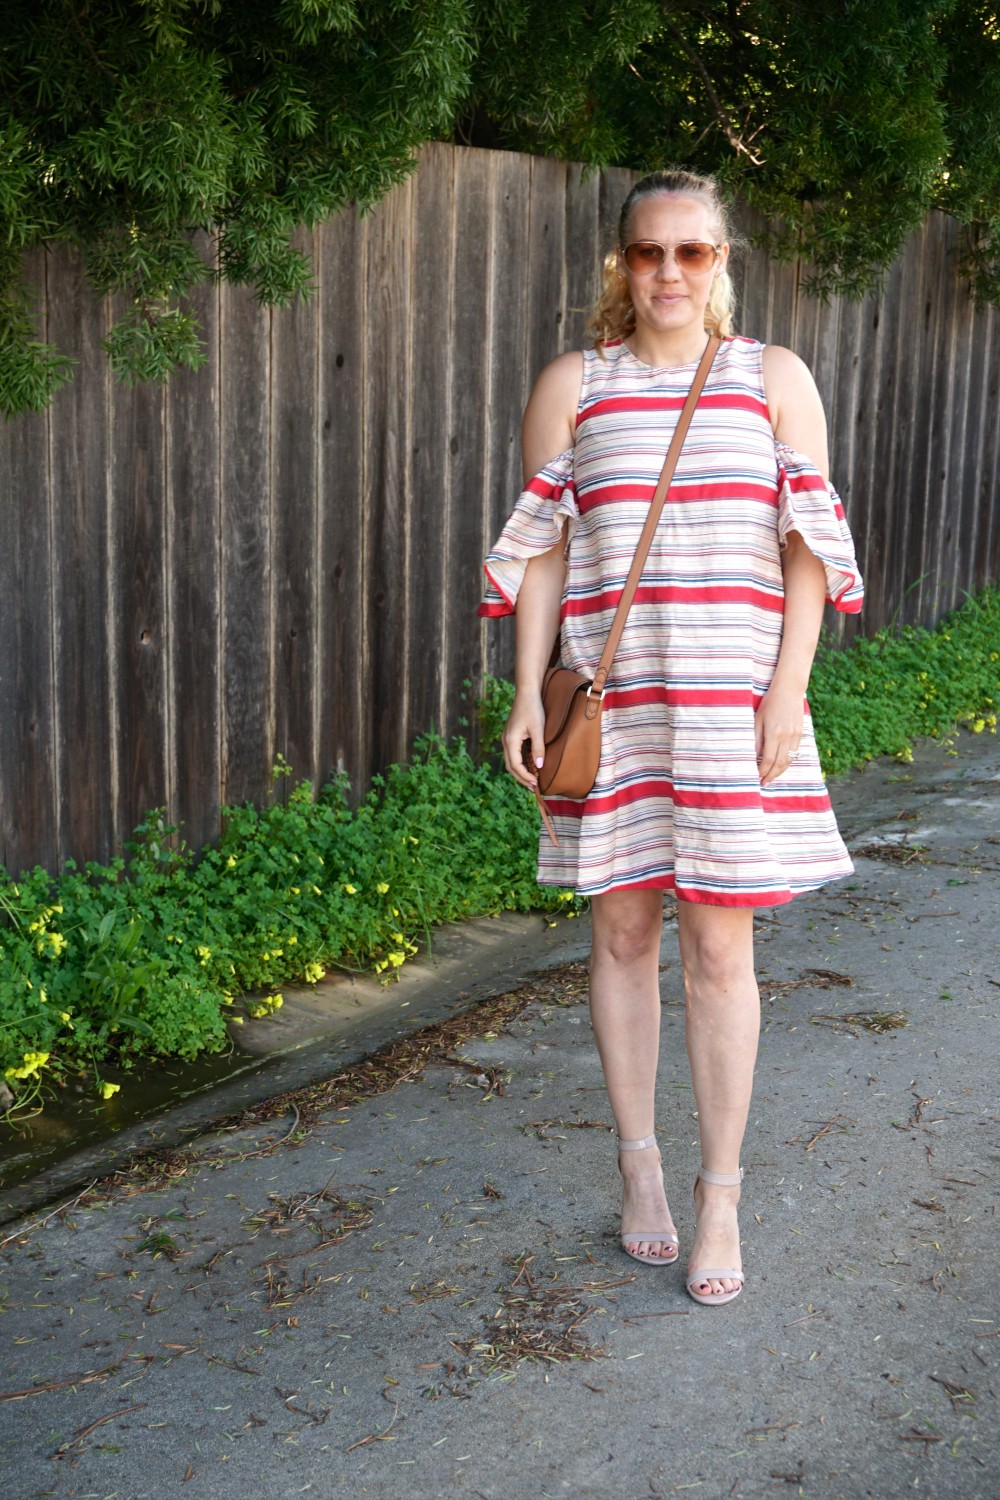 Tanya Taylor-Cold Shoulder Dress-Outfit Inspiration-Spring Style-Have Need Want 7